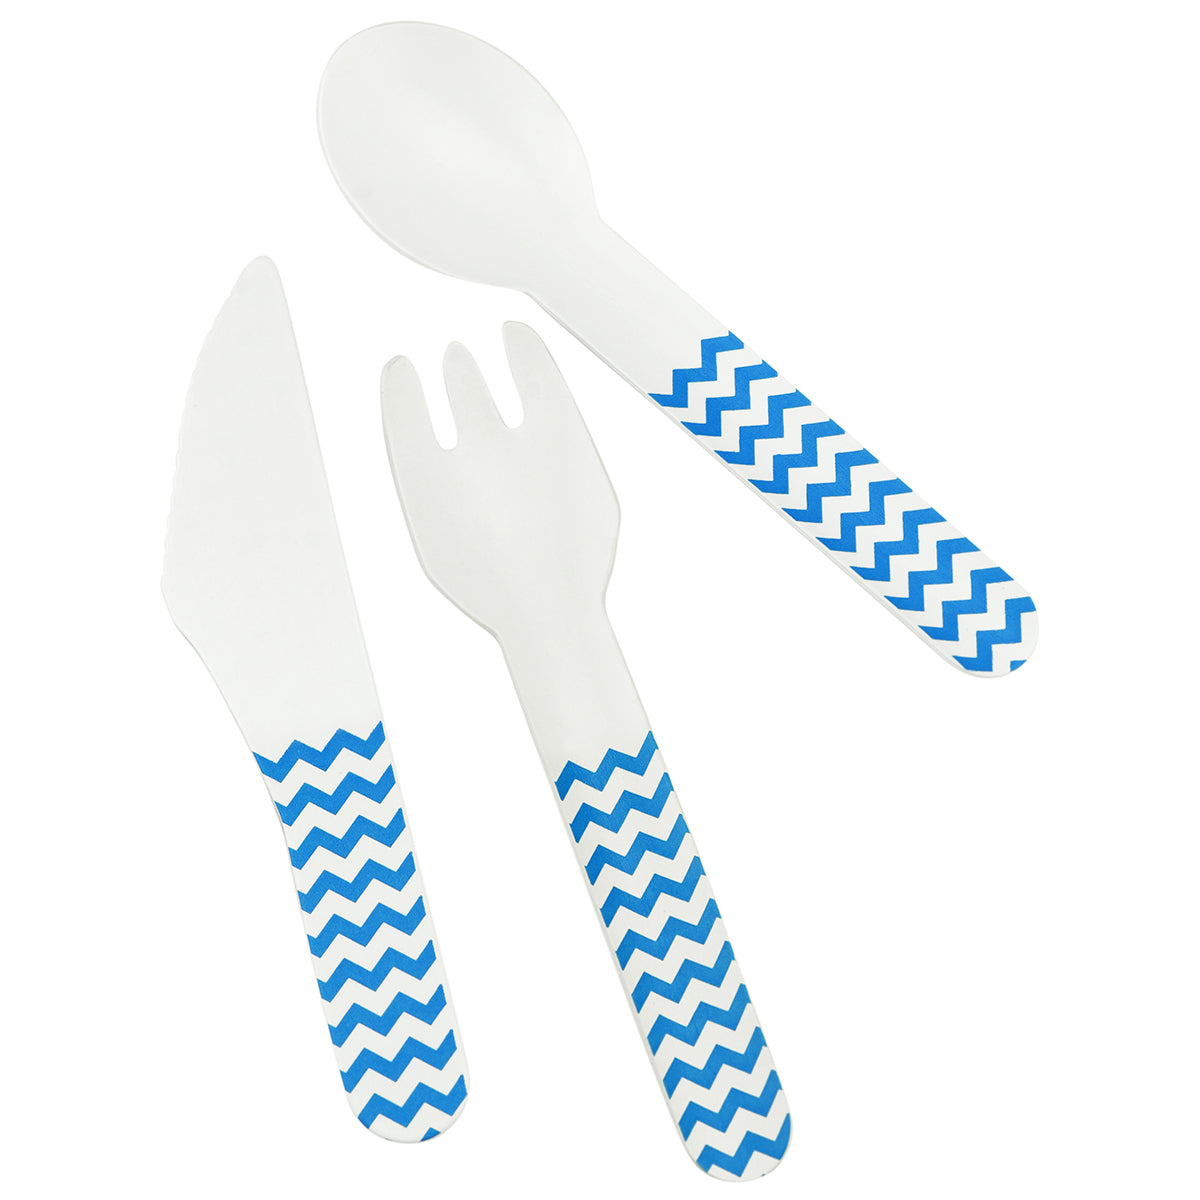 Displaying a set of skyblue zigzag paper cutlery, which includes knife, fork and spoon